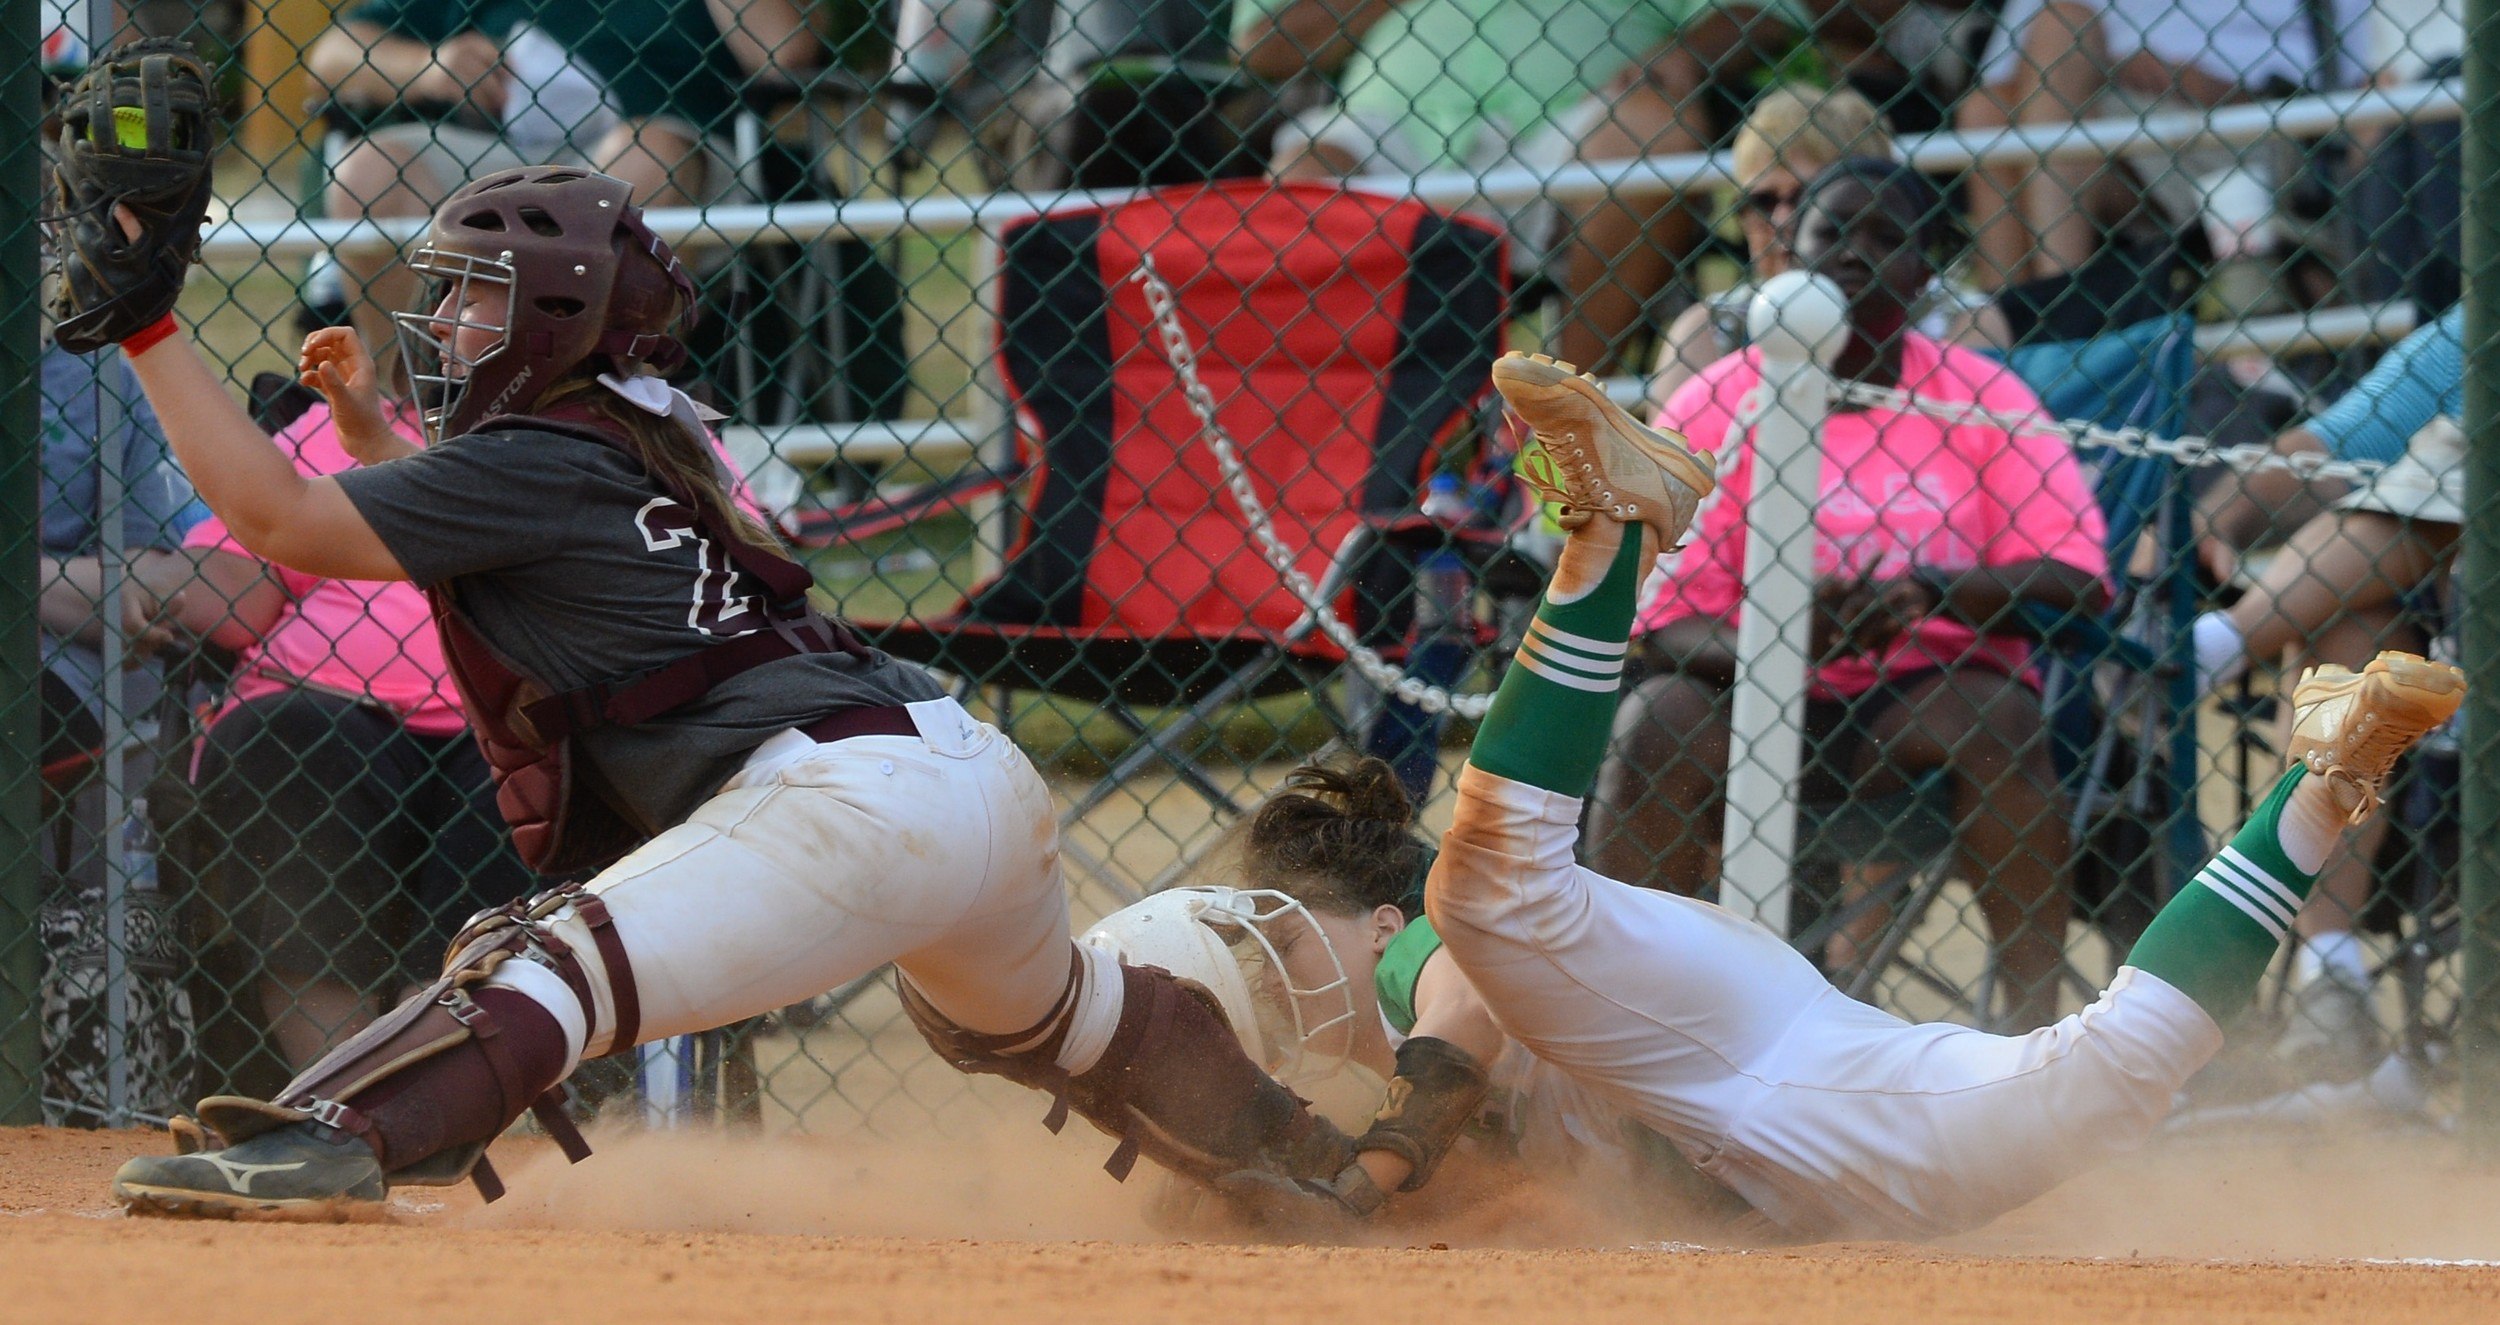 Sumiton Christian catcher Angel Whitlow comes up with the ball as a Brantley base runner slides into home during their game at the State Softball Tournament on Thursday. The Eagles fell to Brantley 5-1 in the championship game.